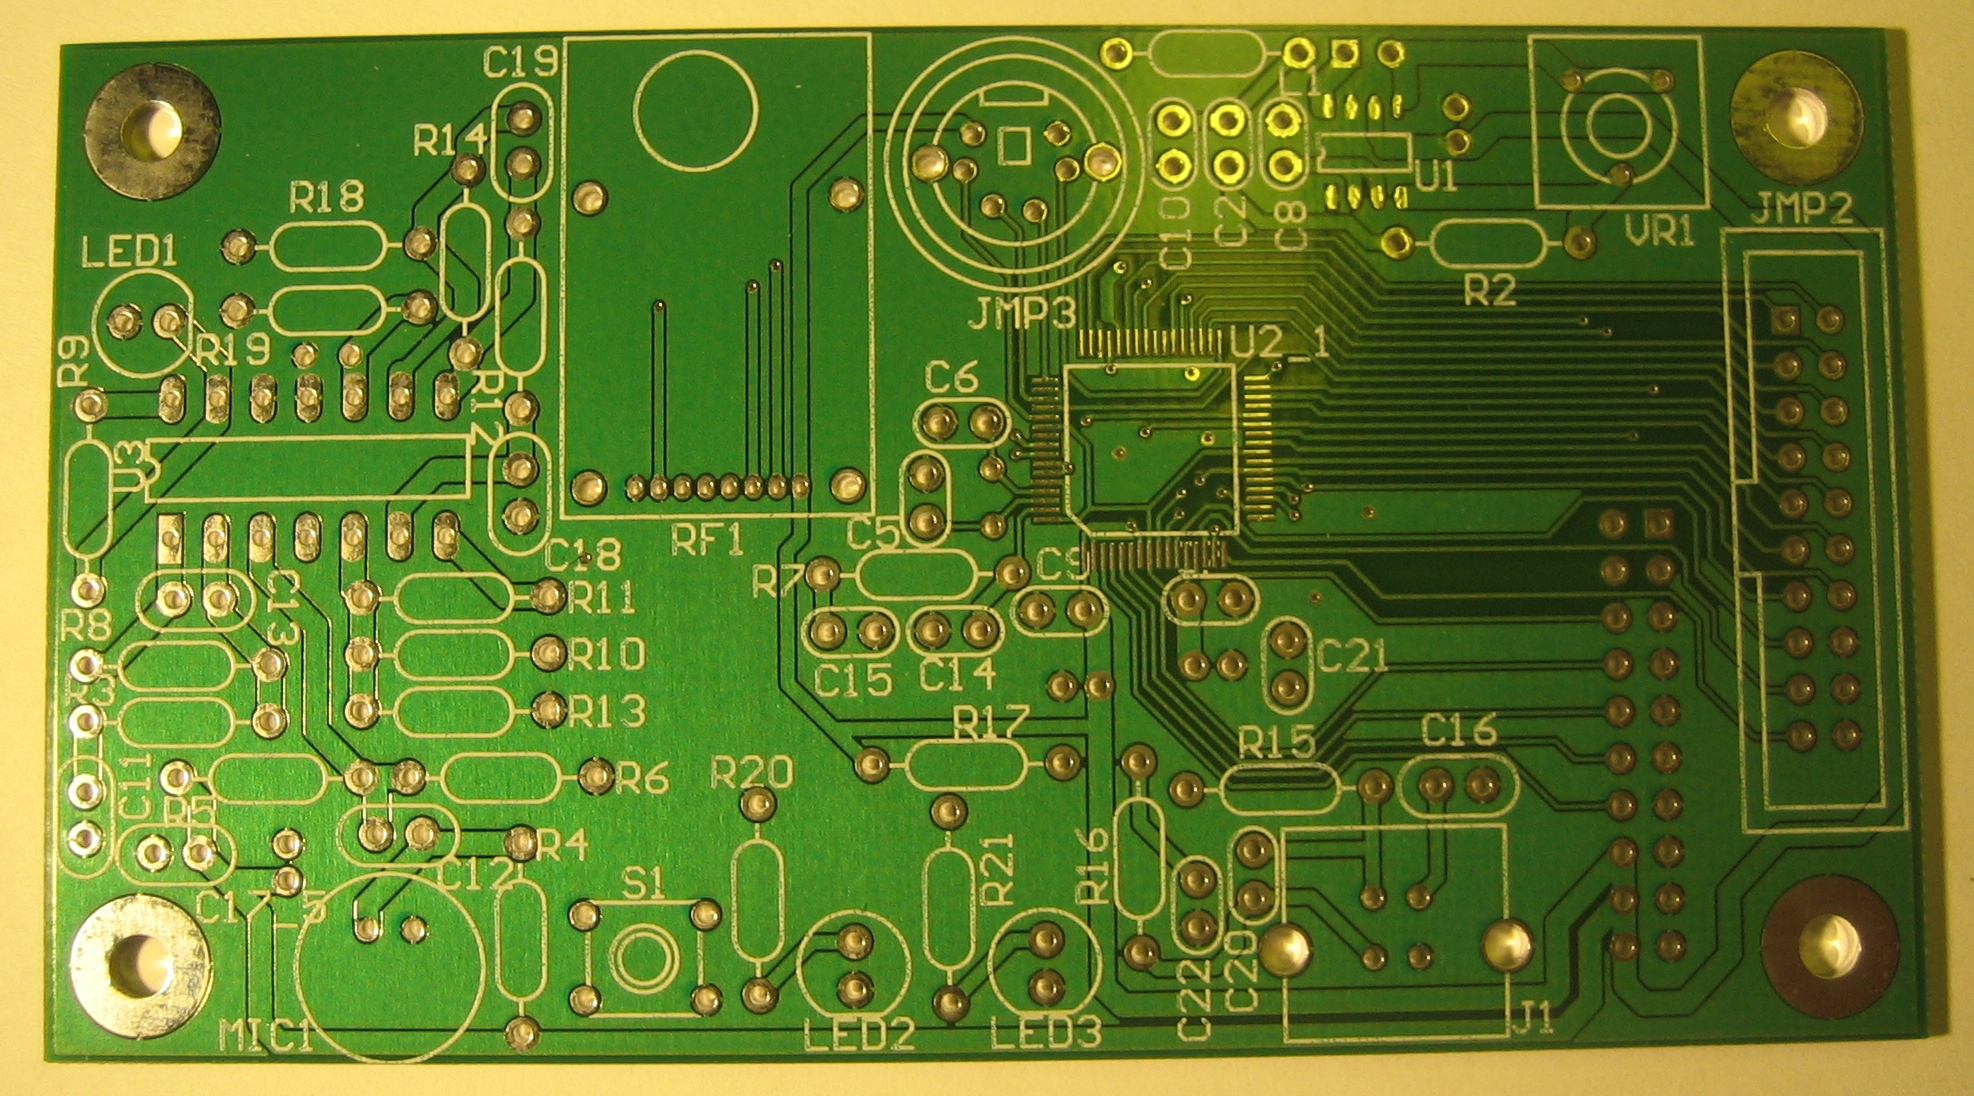 Step By Guide To Building A Plug Low Voltage Board Making Printed Circuit Boards The Top Side Of Before Any Components Have Been Added Use Metal File Make Edges Smooth